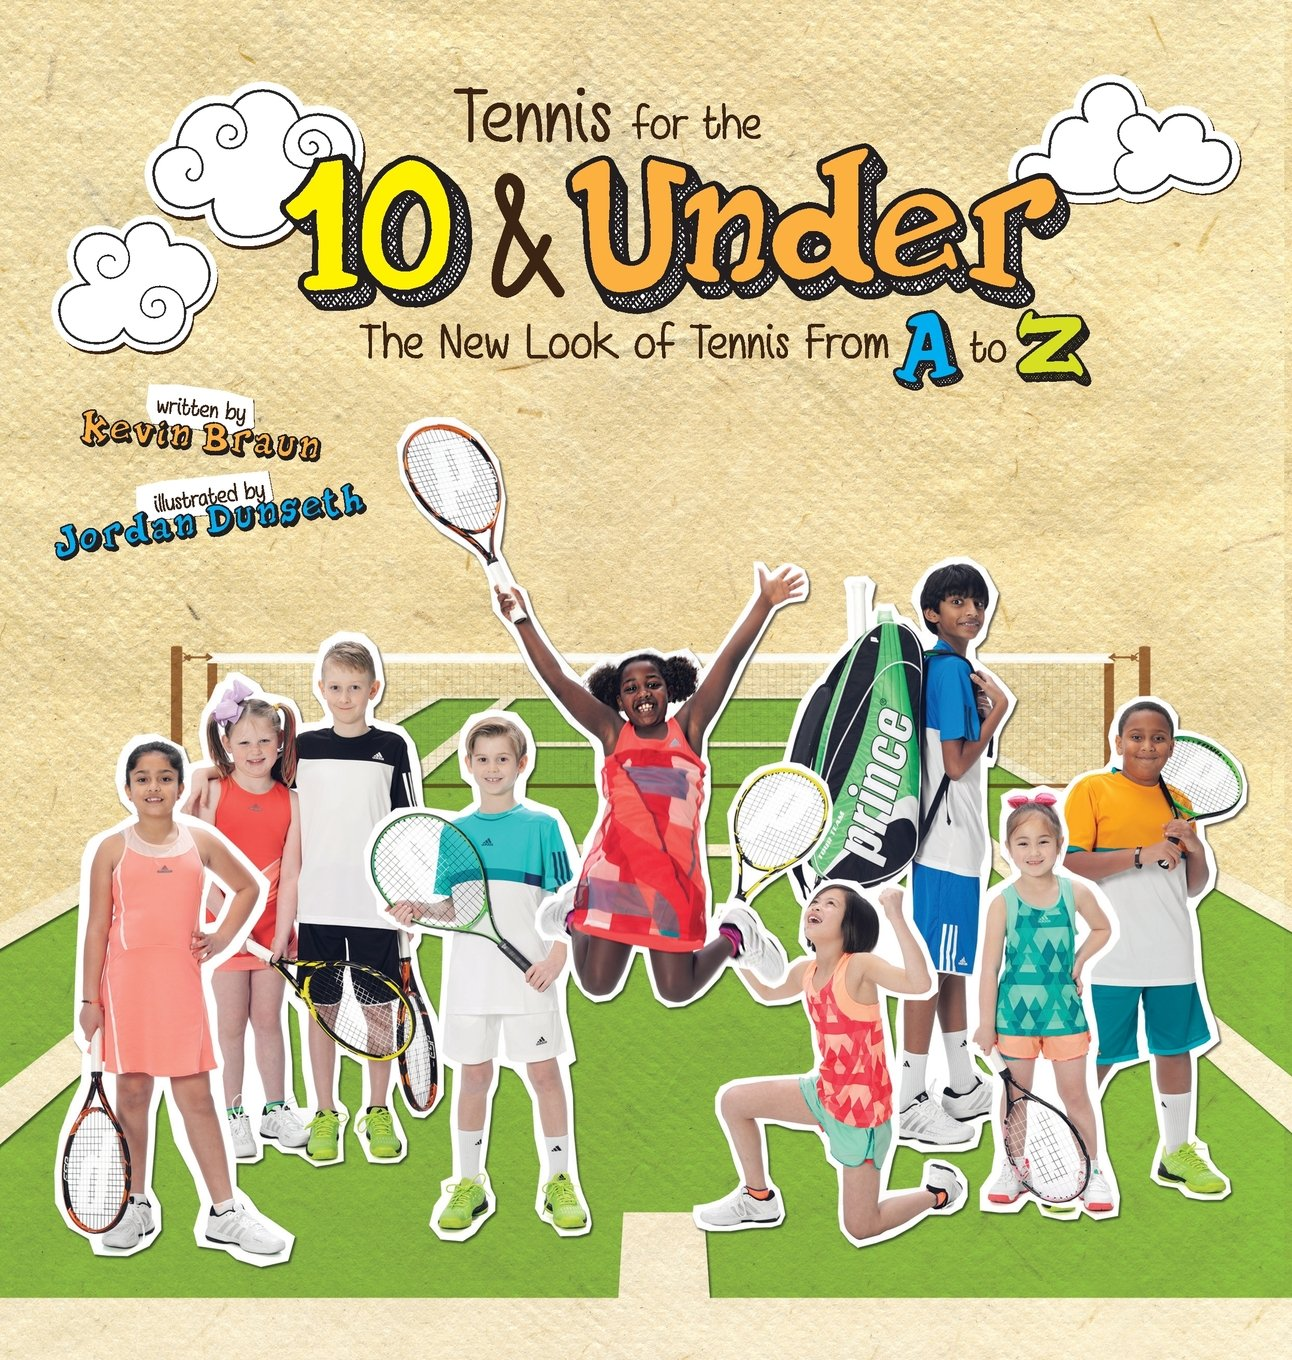 tennis-for-the-10-under-the-new-look-of-tennis-from-a-to-z